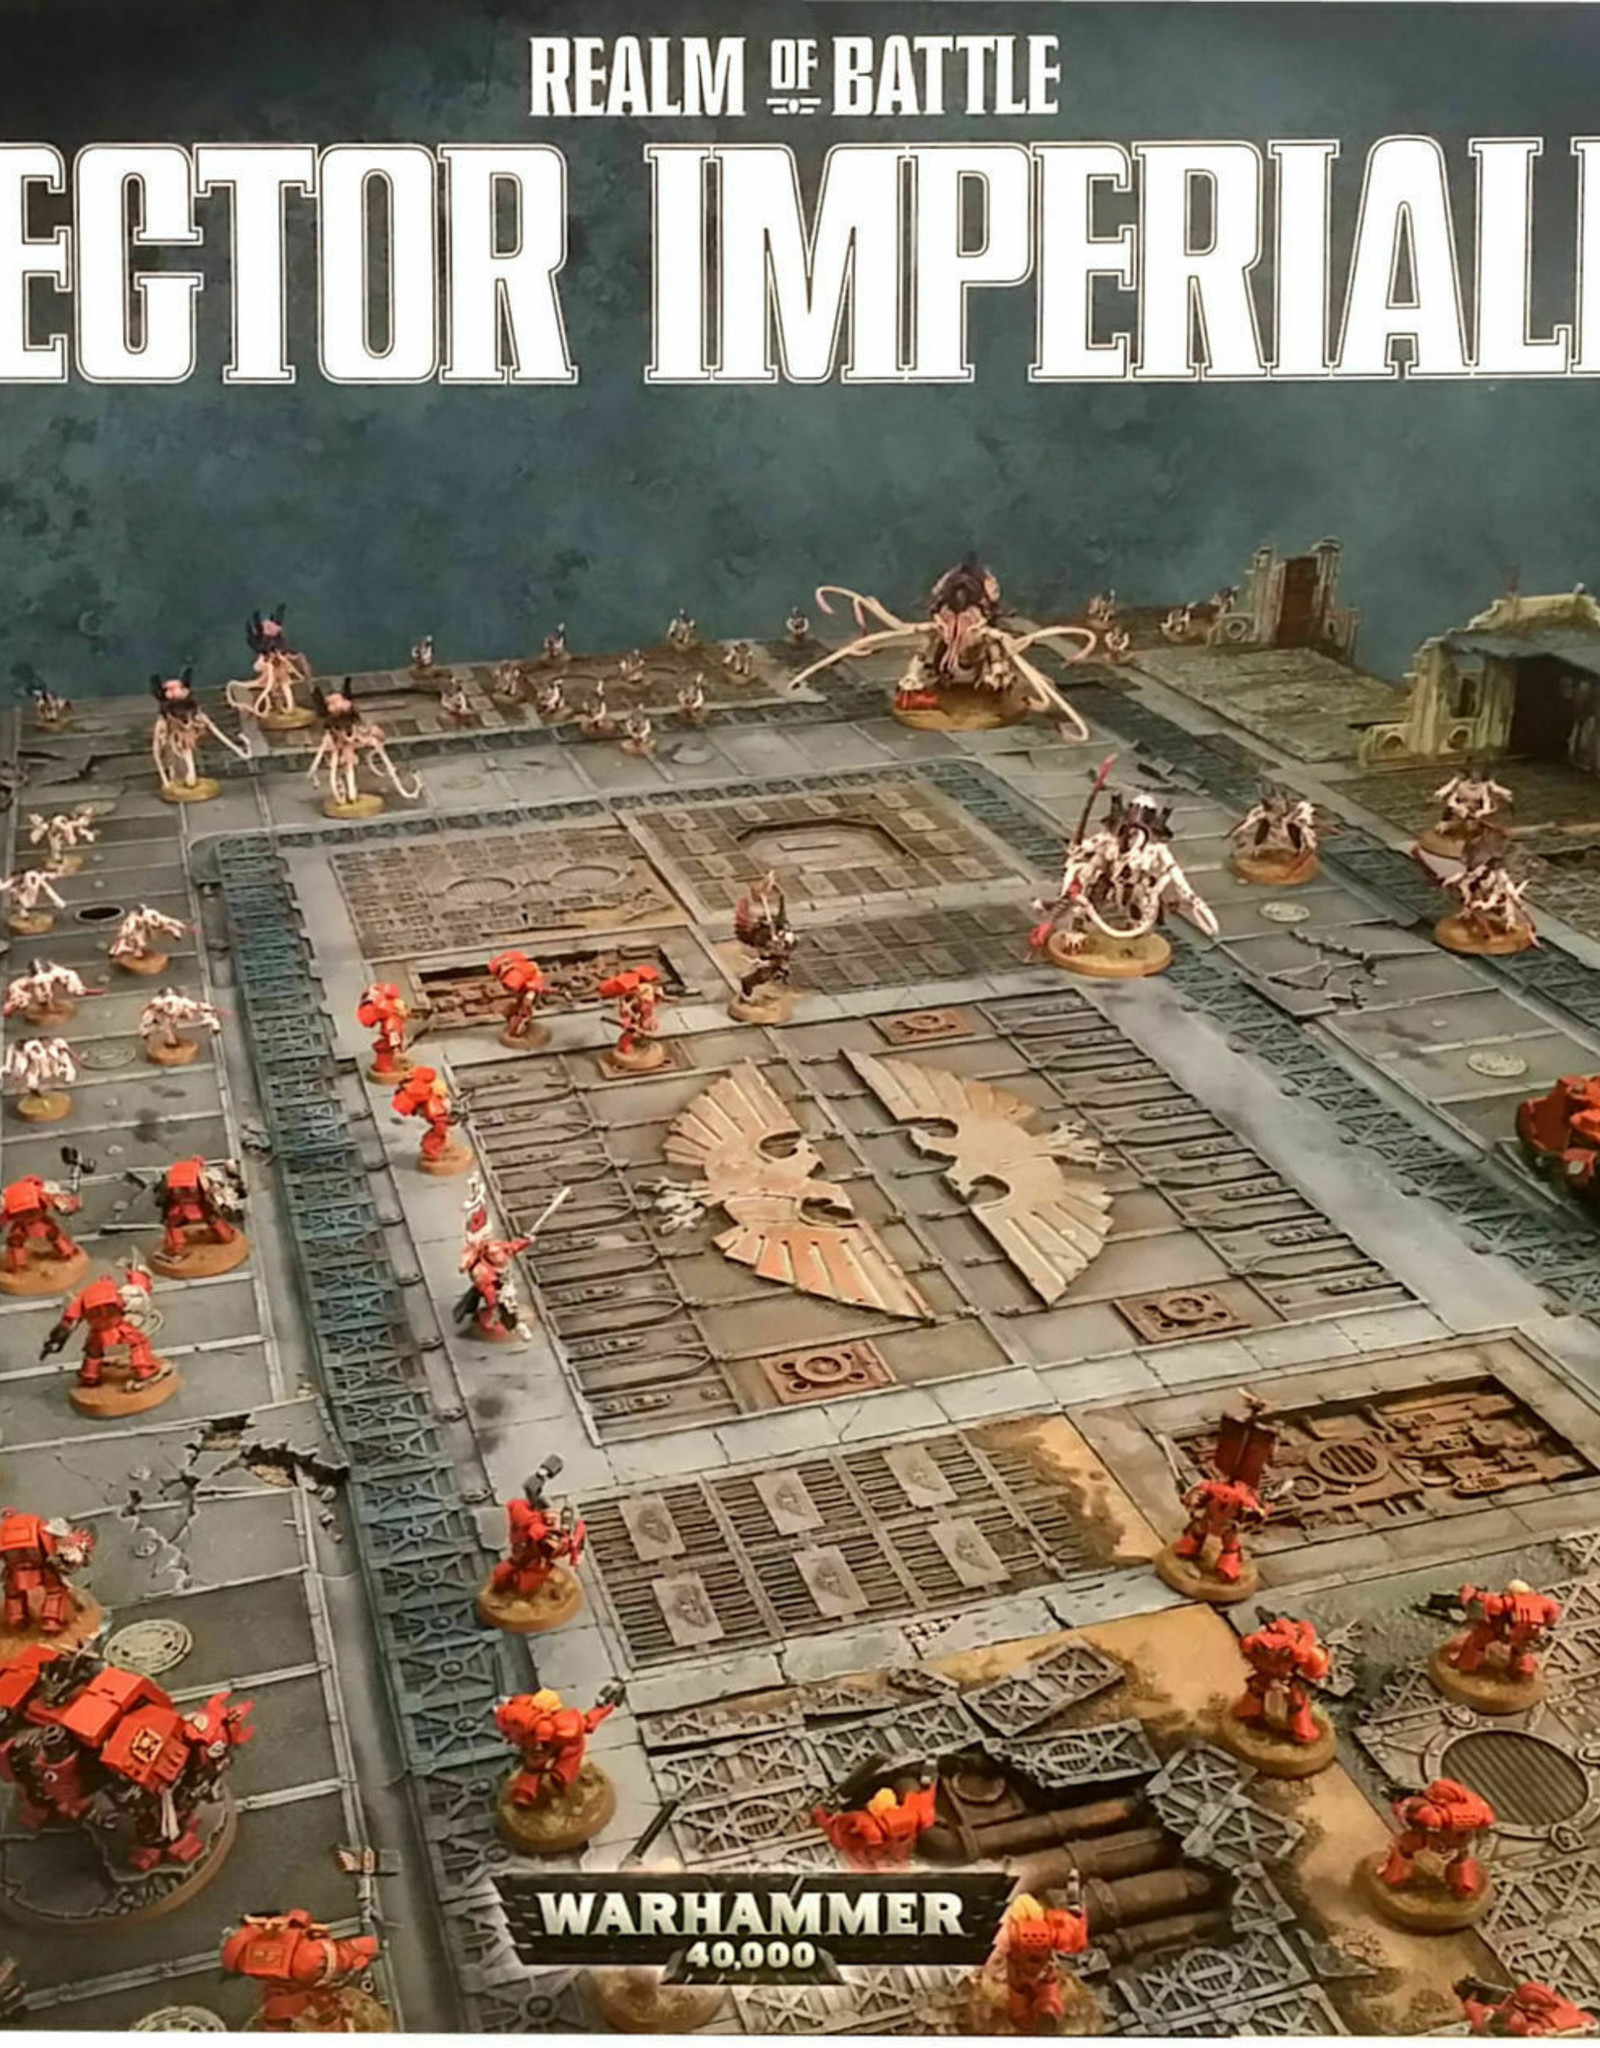 Warhammer 40K Realm of Battle: Sector Imperialis